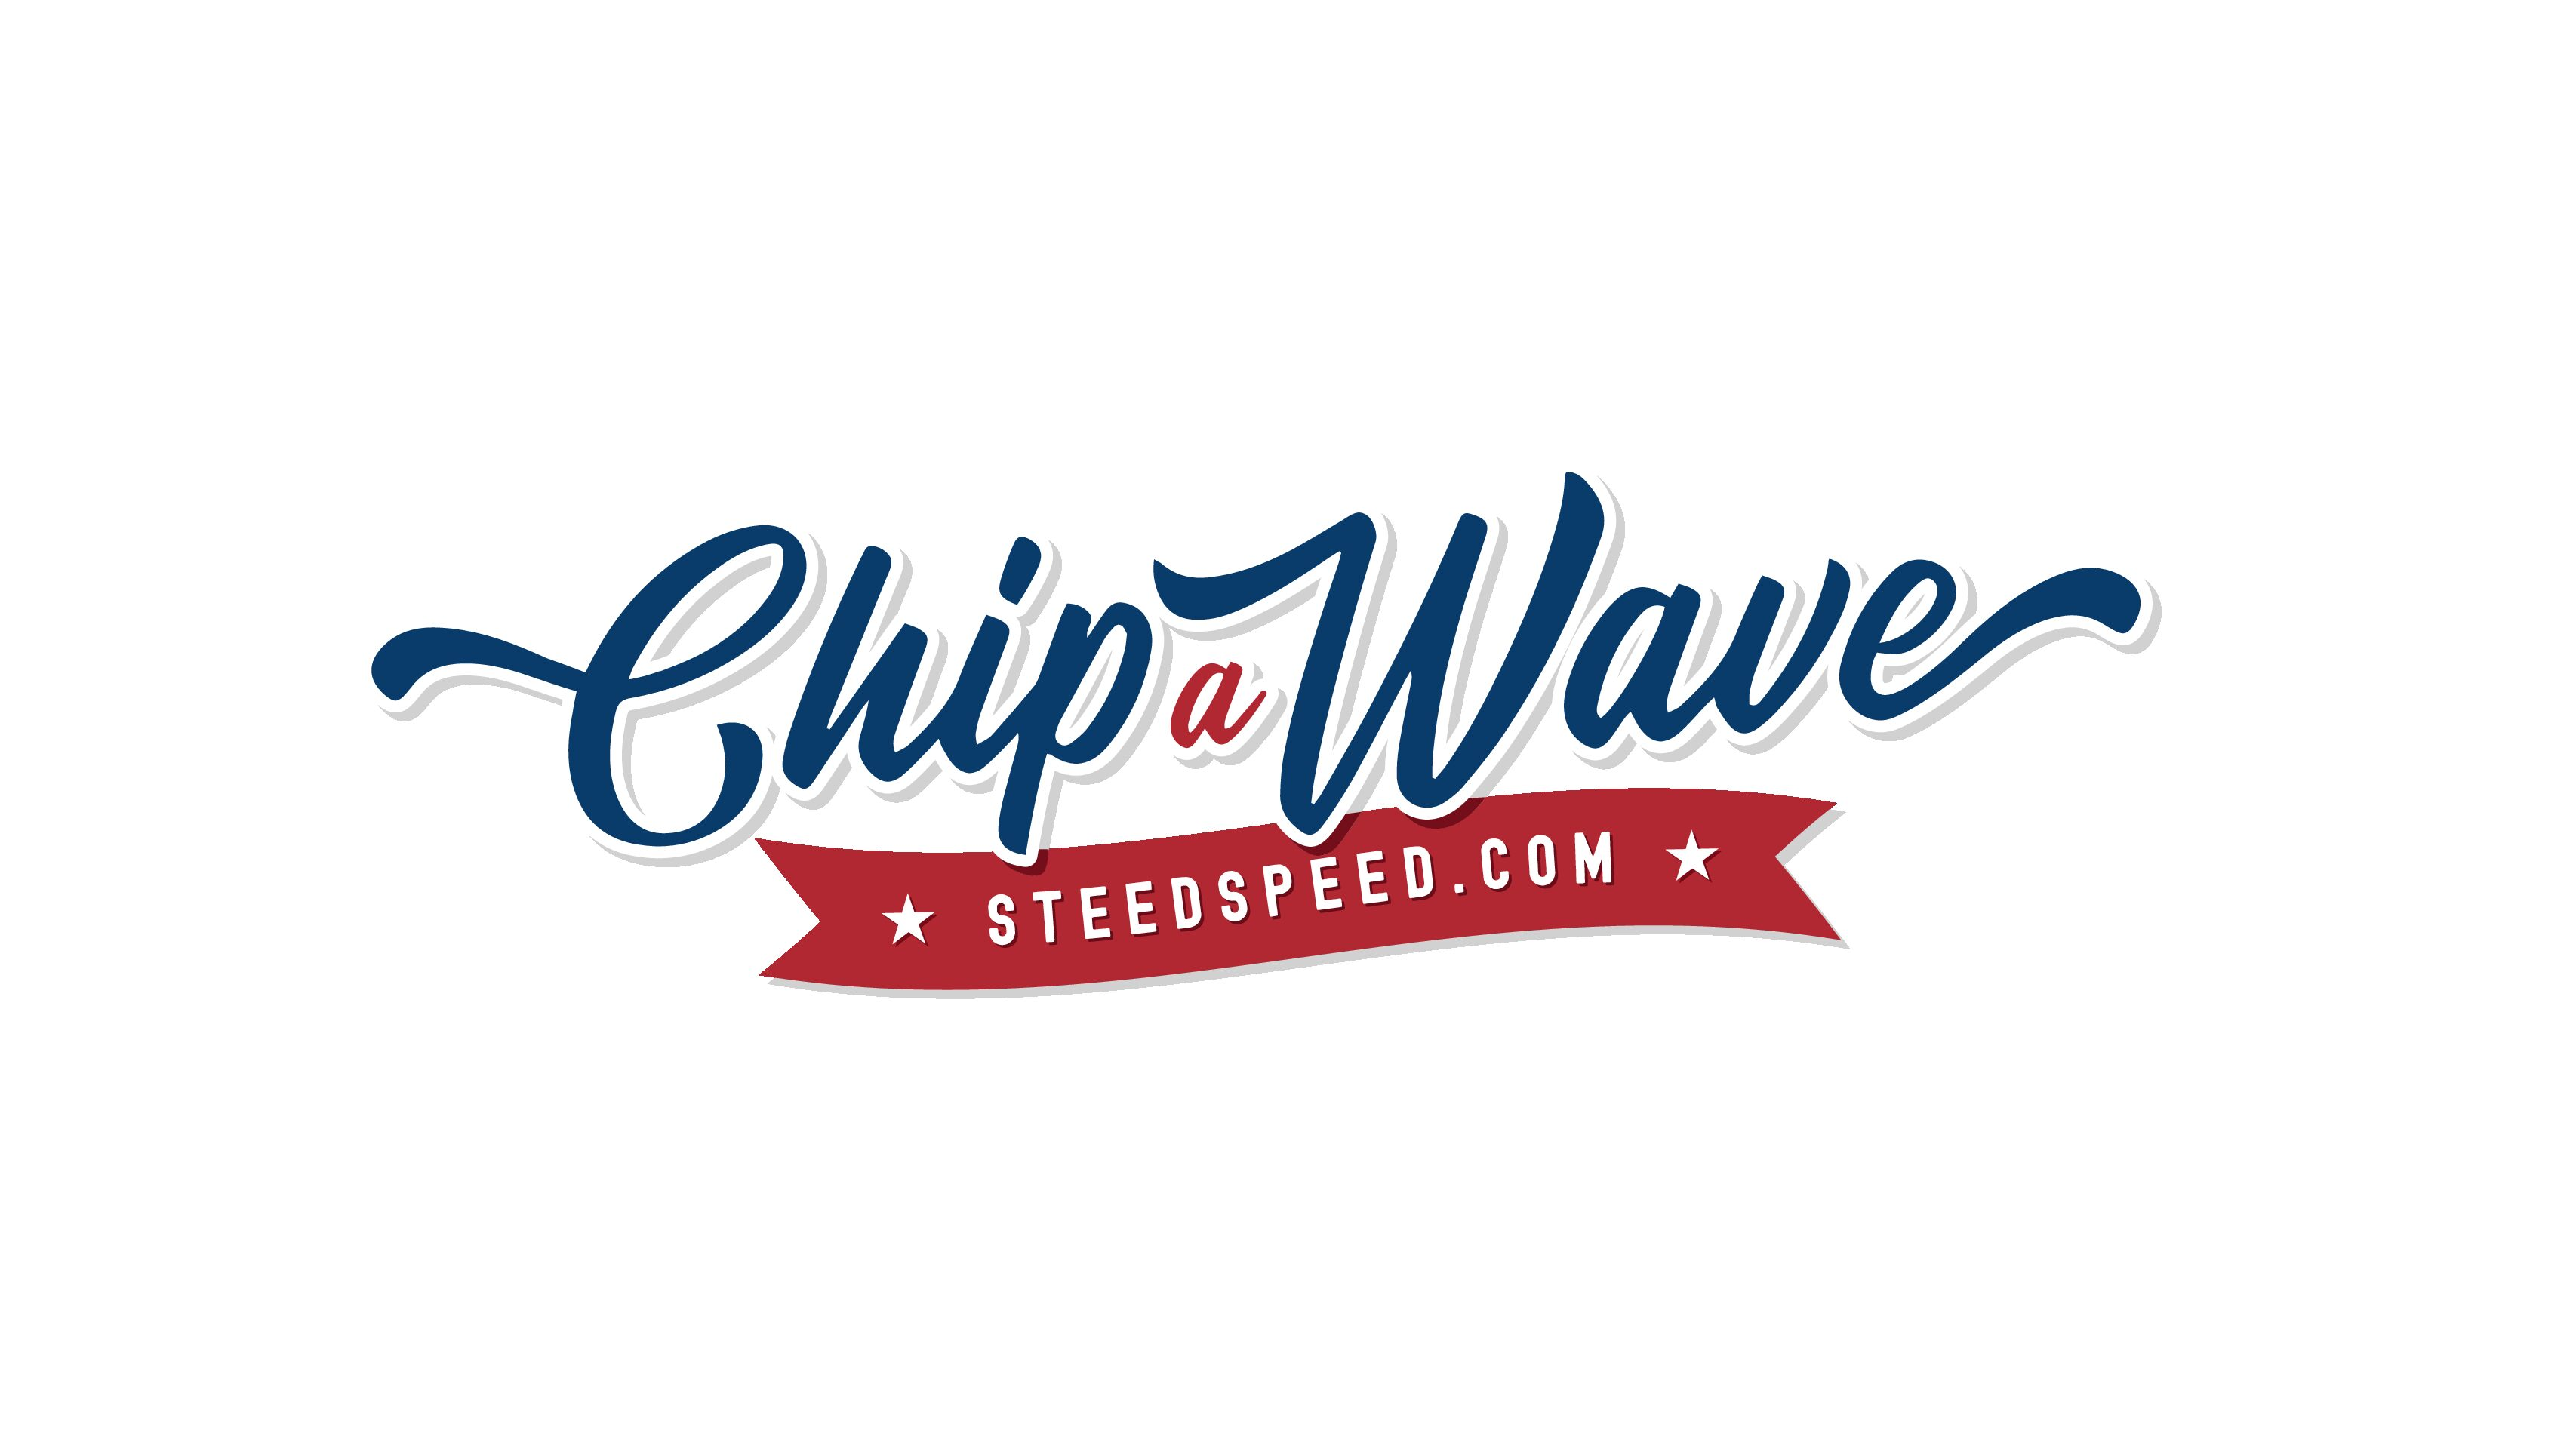 Chip-A-Wave CNC Metal Chip Removal System